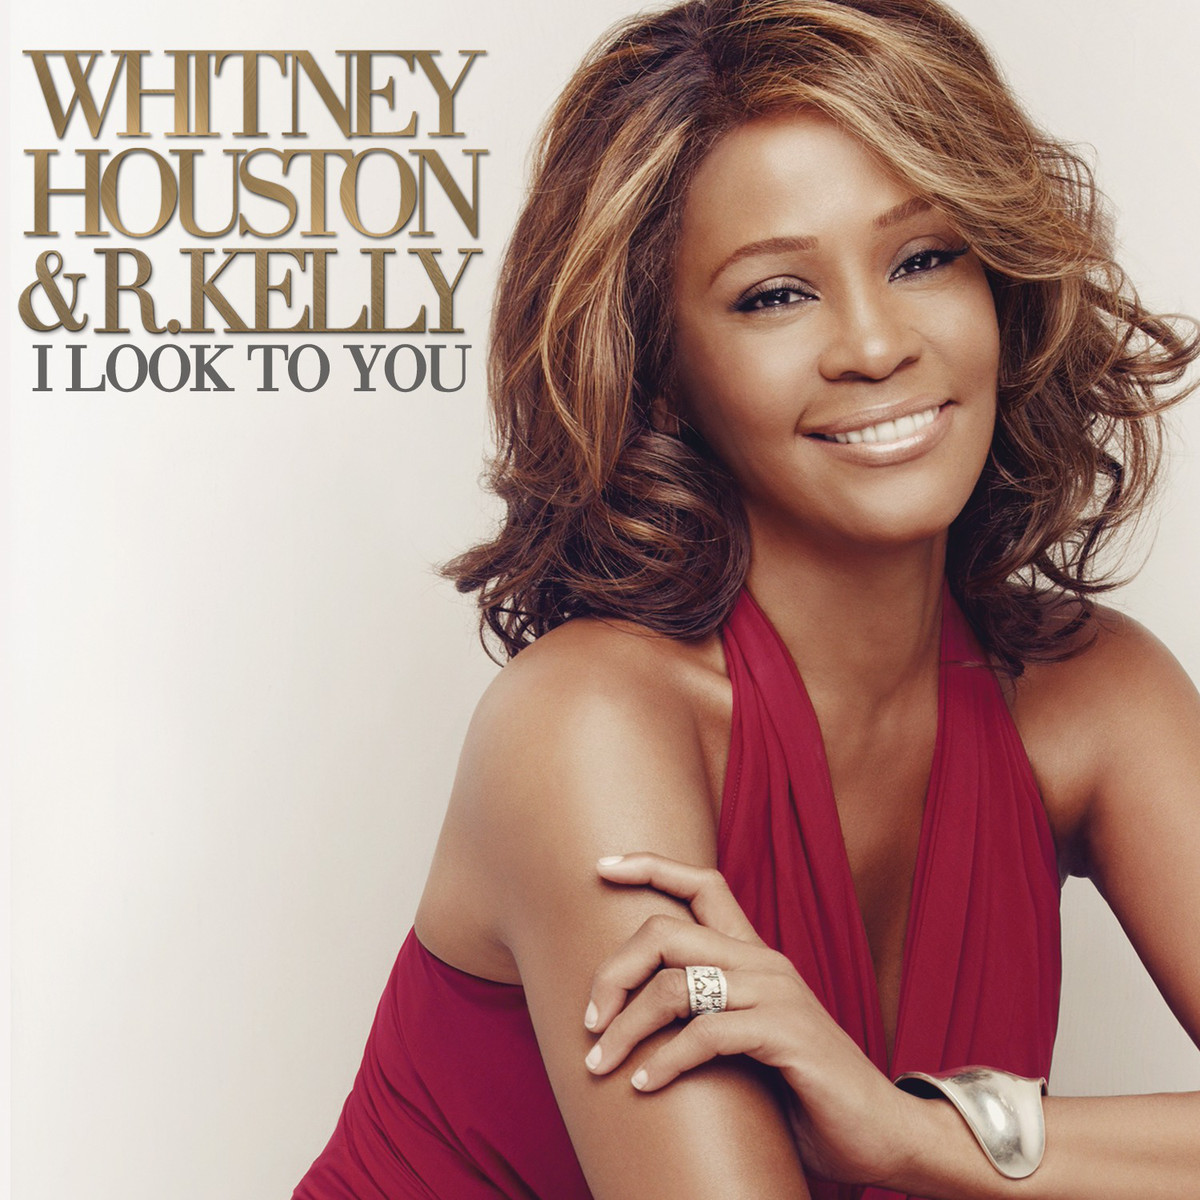 http://2.bp.blogspot.com/-lavsxHCzgNU/UGHgfhCuomI/AAAAAAAAFbA/a1COxVMGc_c/s1600/Whitney-Houston-I-Look-to-You-feat.-R.-Kelly-2012.png